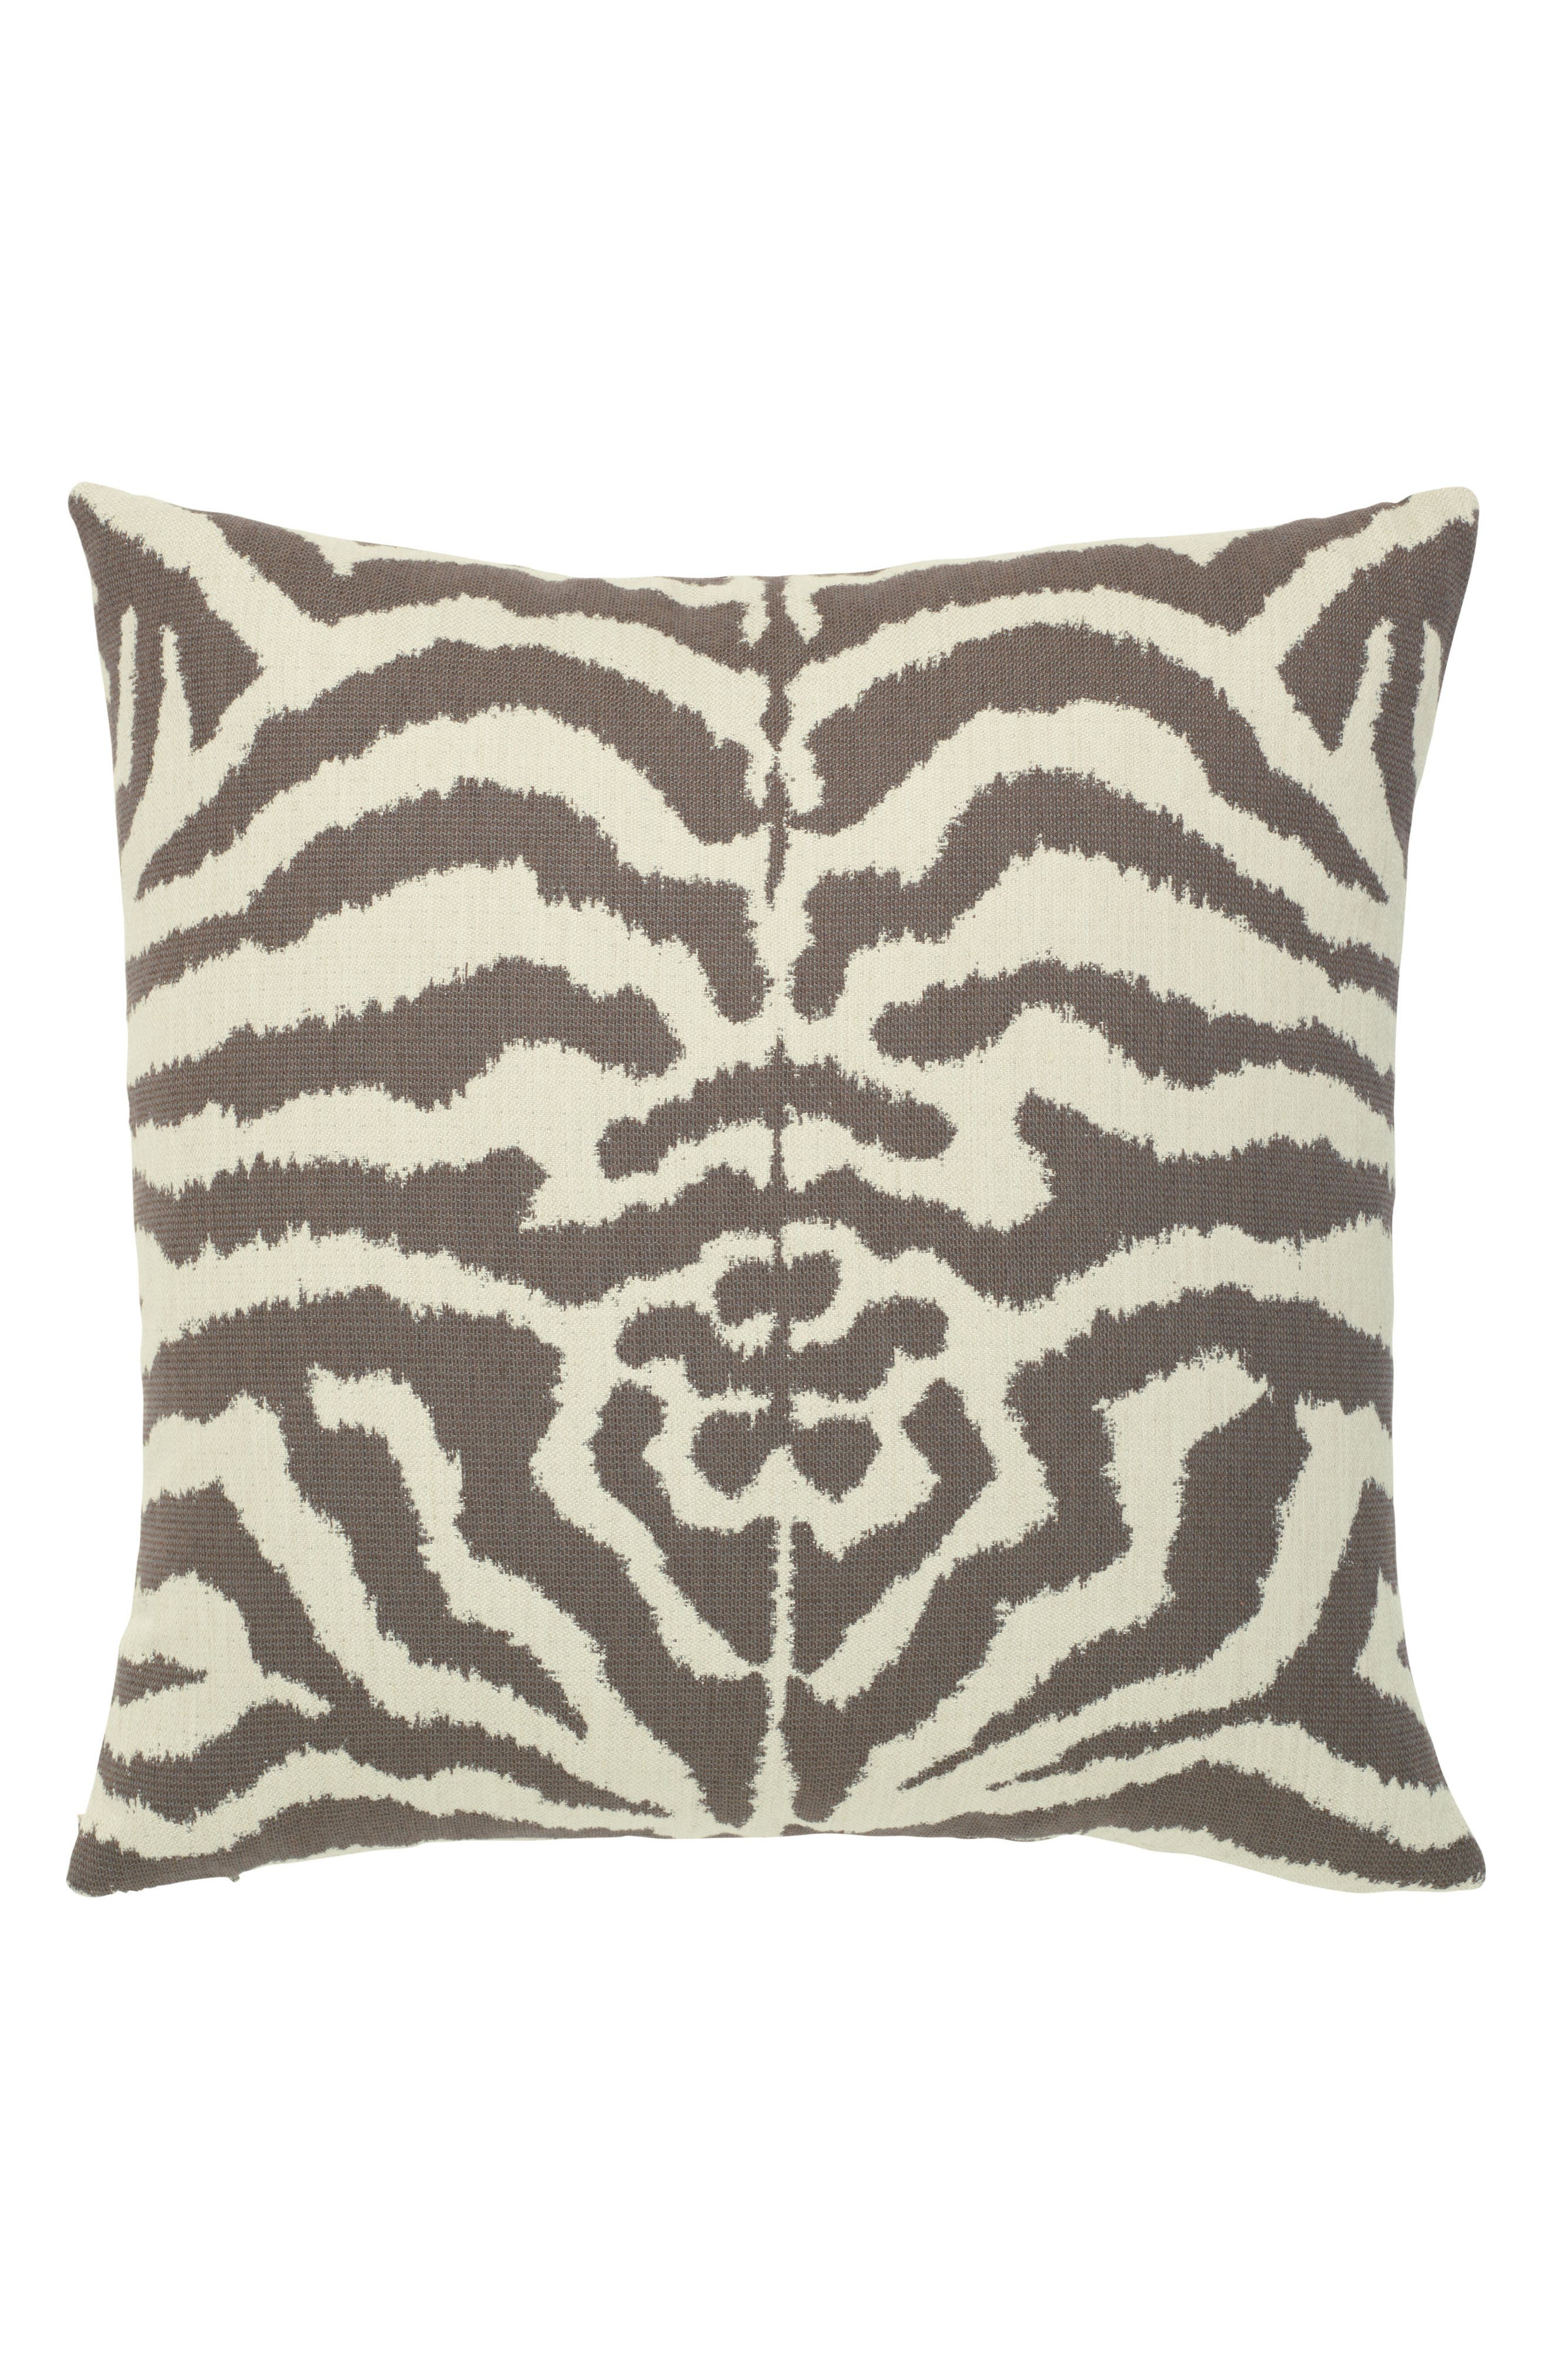 Zebra Mocha Indoor/Outdoor Accent Pillow,                             Main thumbnail 1, color,                             Brown/ White